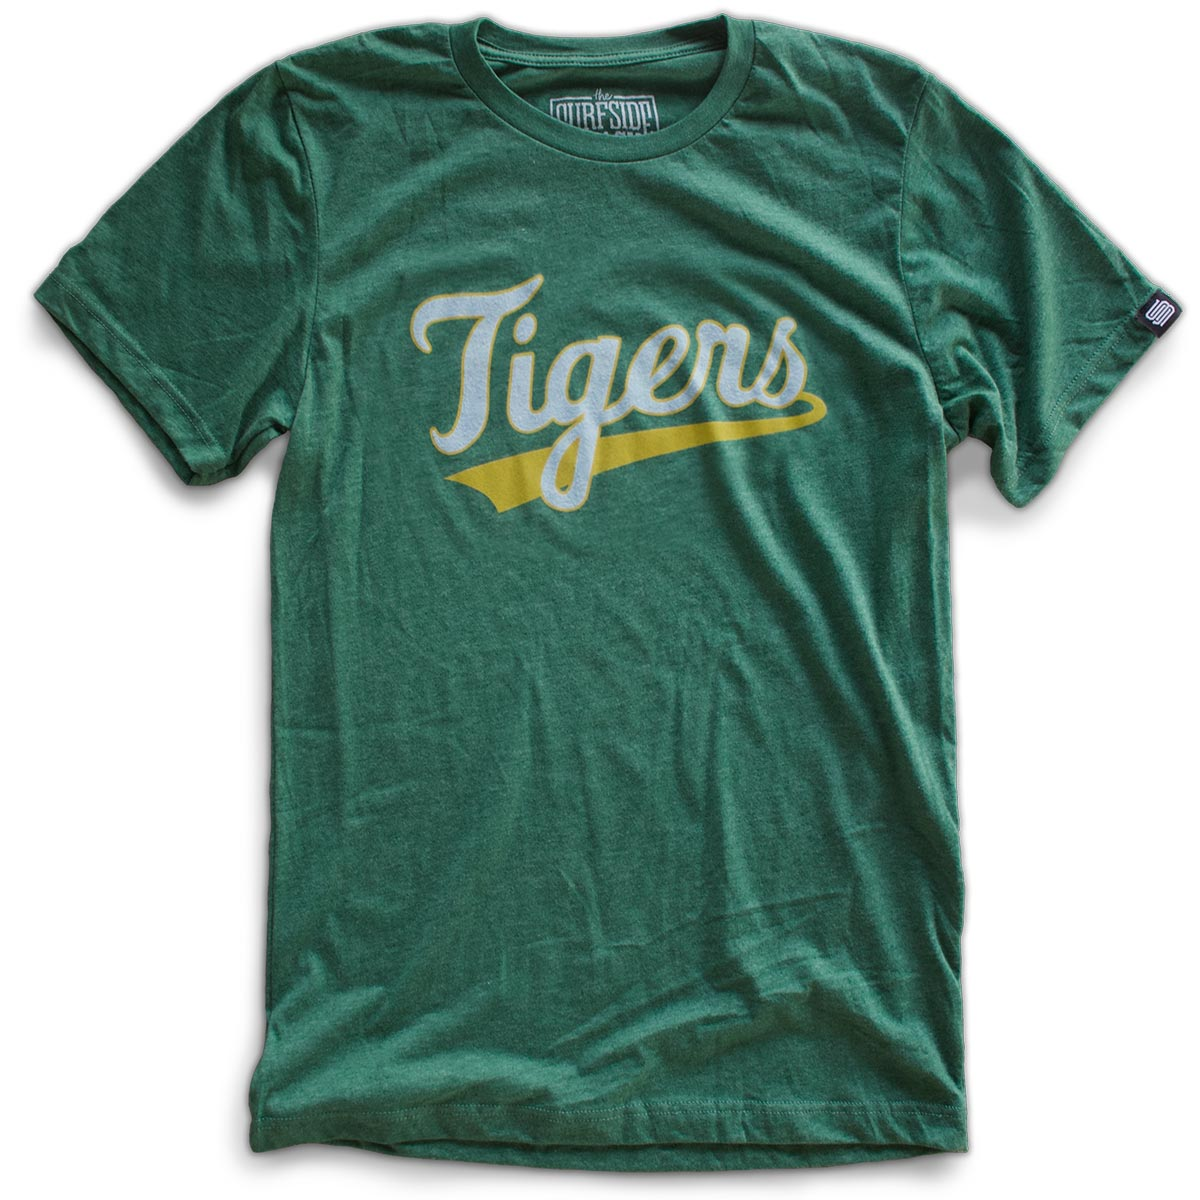 Tigers (Conway) Unisex T-Shirt